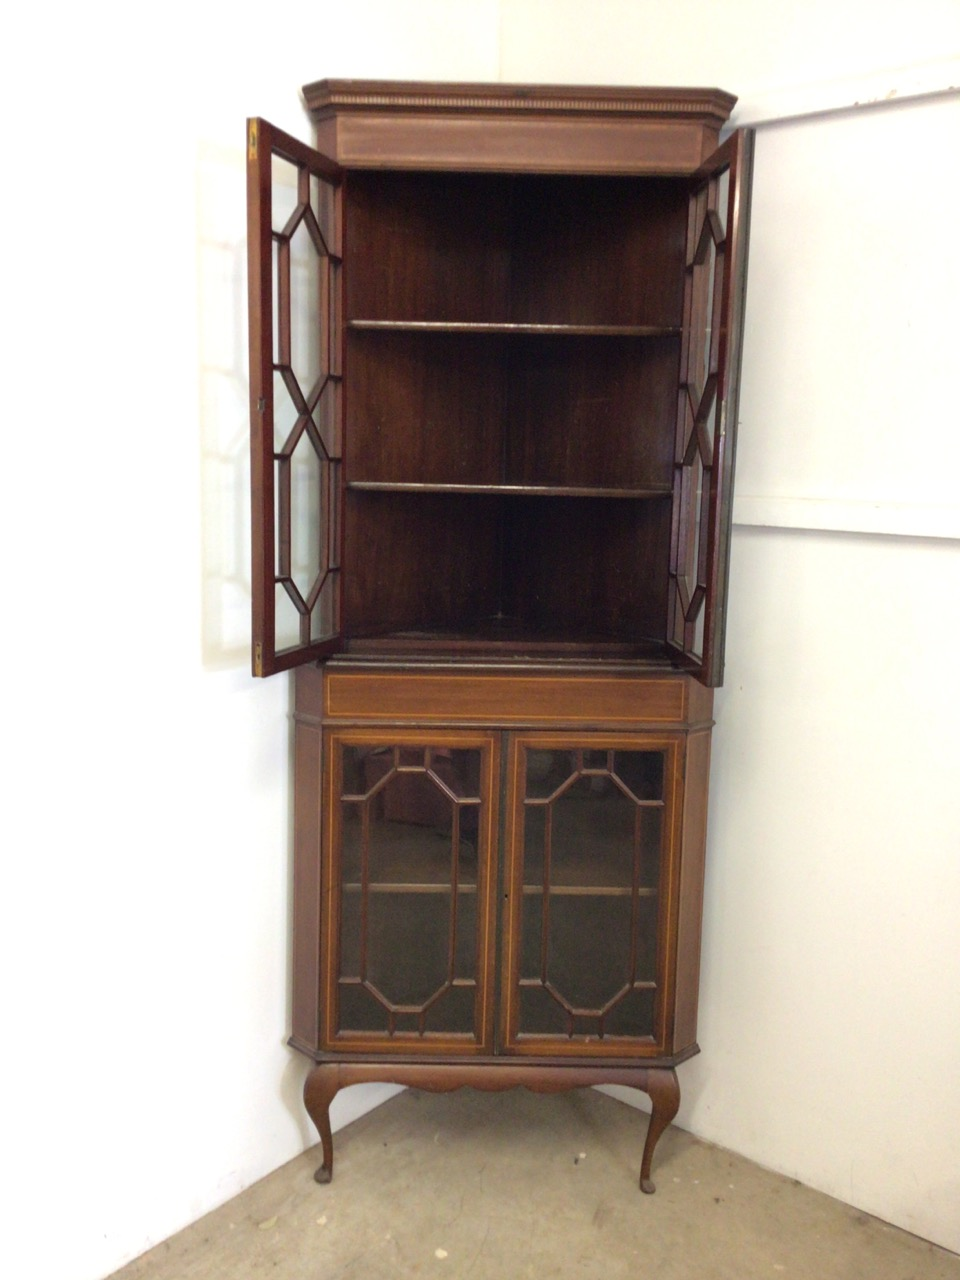 An inlaid Edwardian two piece corner cupboard each section with double doors to shelves W:70cm x D: - Image 2 of 5